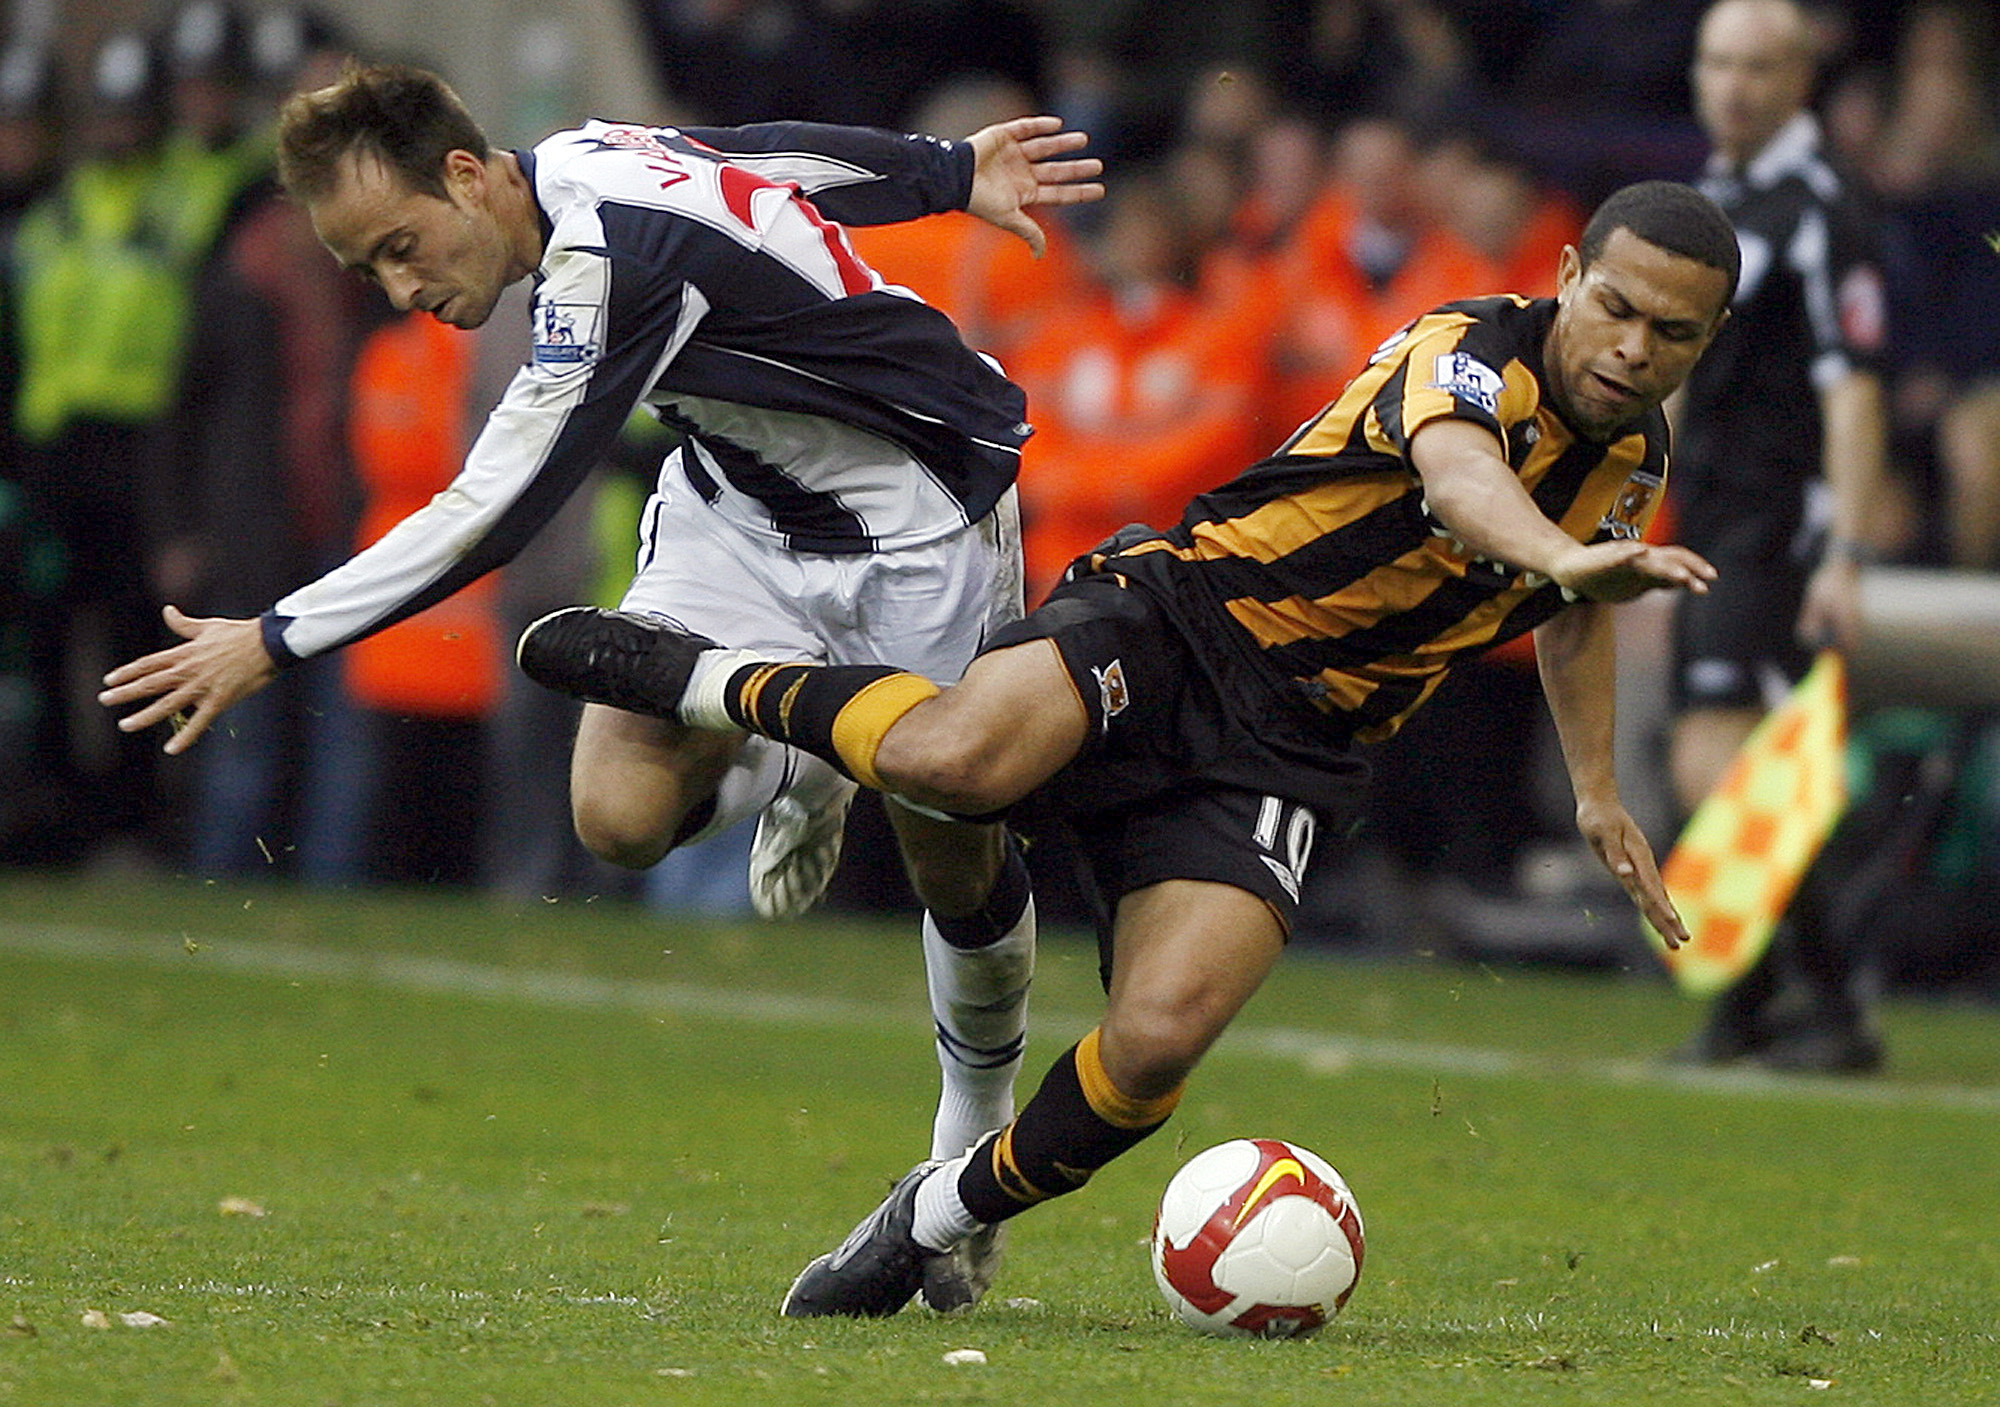 Hull City's Brazilian midfielder Geovanni, right, is fouled by West Bromwich Albion's Valero at the Hawthorns stadium, West Bromwich, England on Satur...